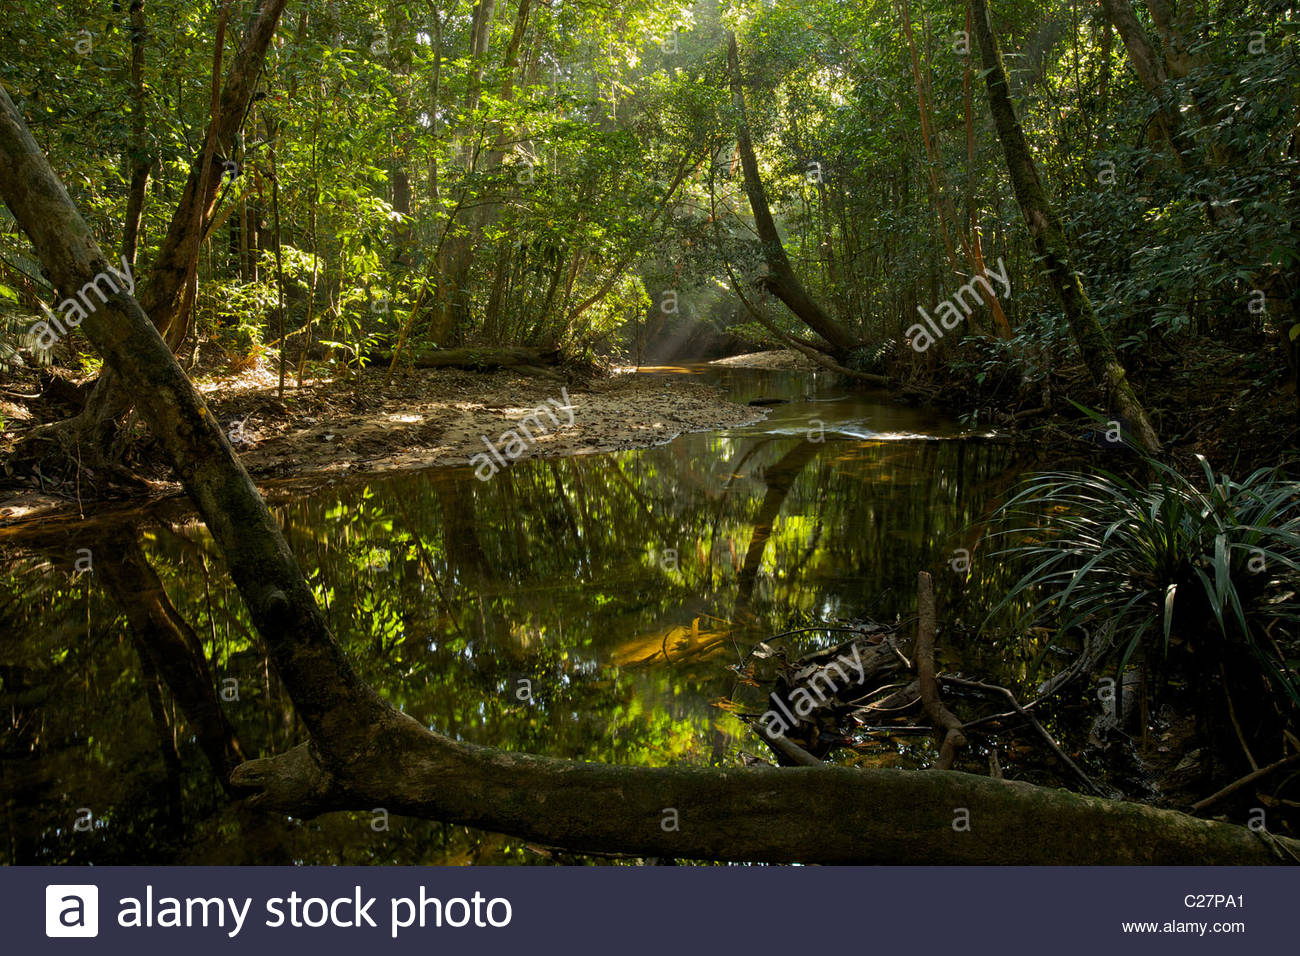 A rain forest stream in Gunung Palung National Park. - Stock Image